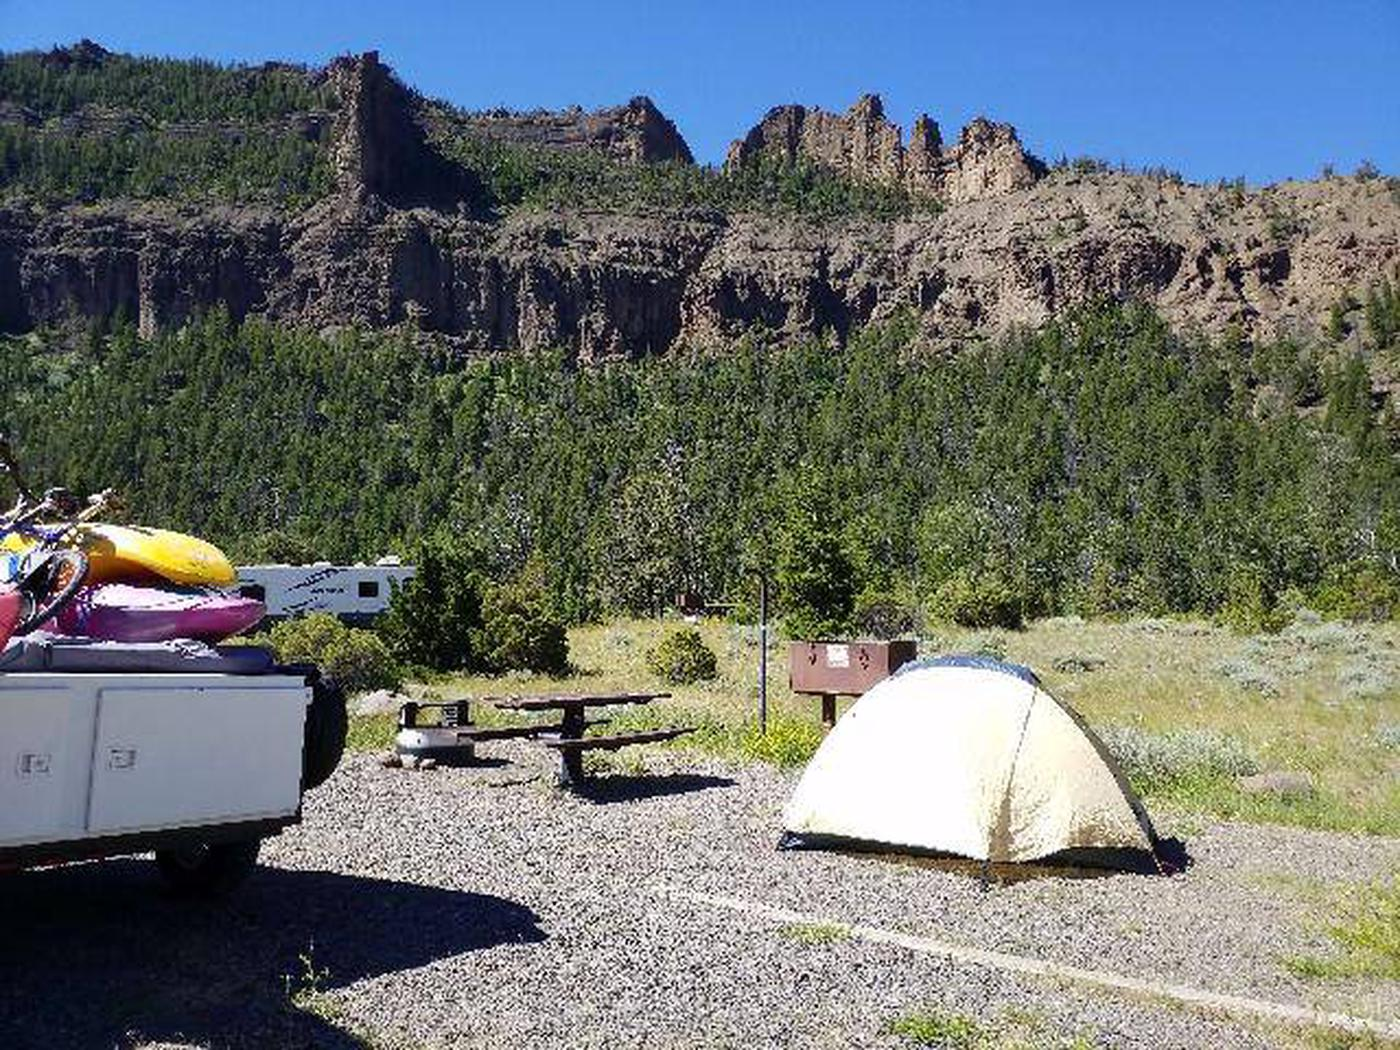 Rex Hale Campground campsite area with cliffs in background